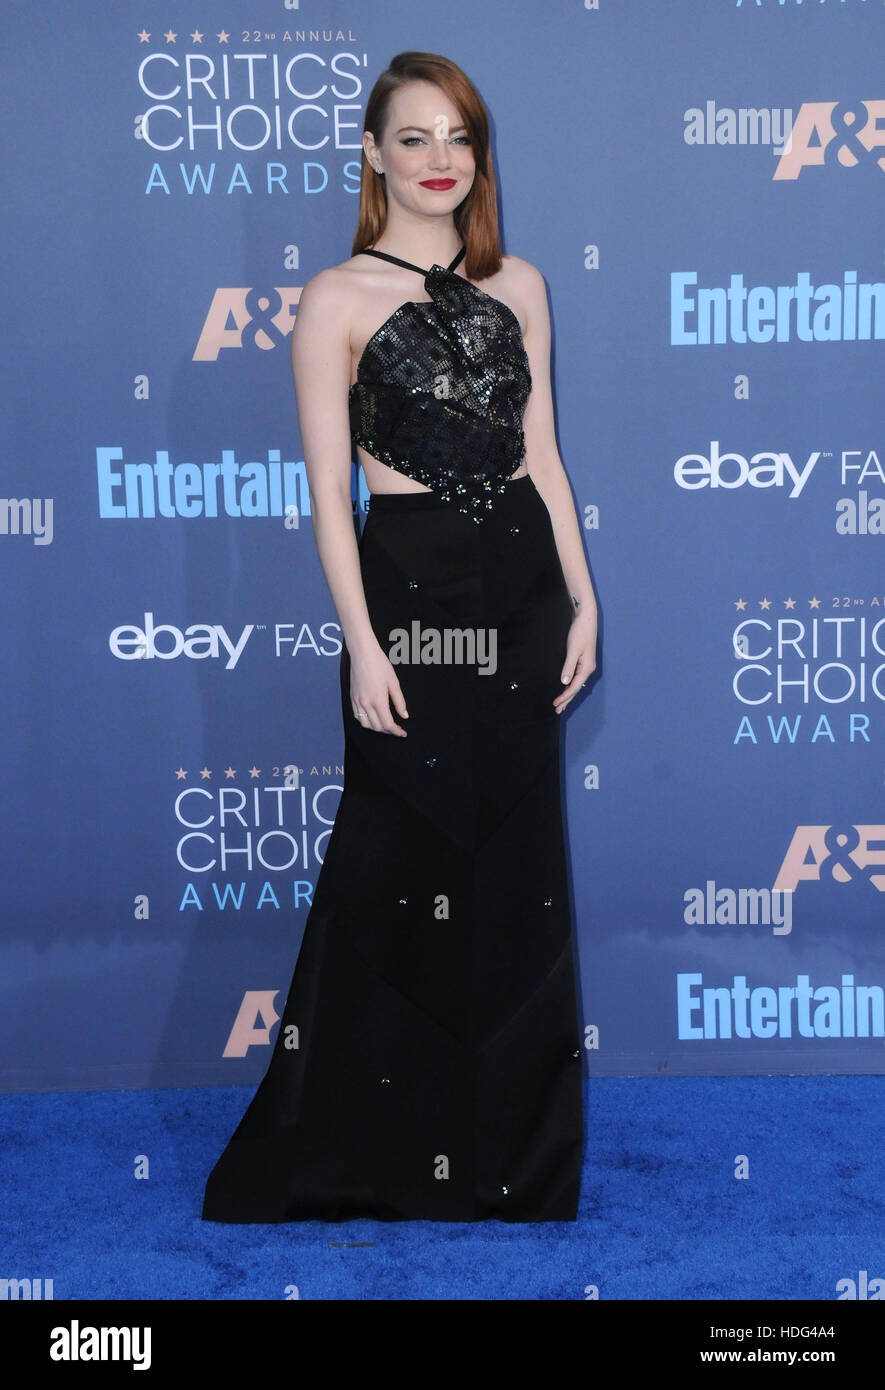 Santa Monica, California, USA. 11th Dec, 2016. Emma Stone. The 22nd Annual Critics' Choice Awards held at Barker - Stock Image